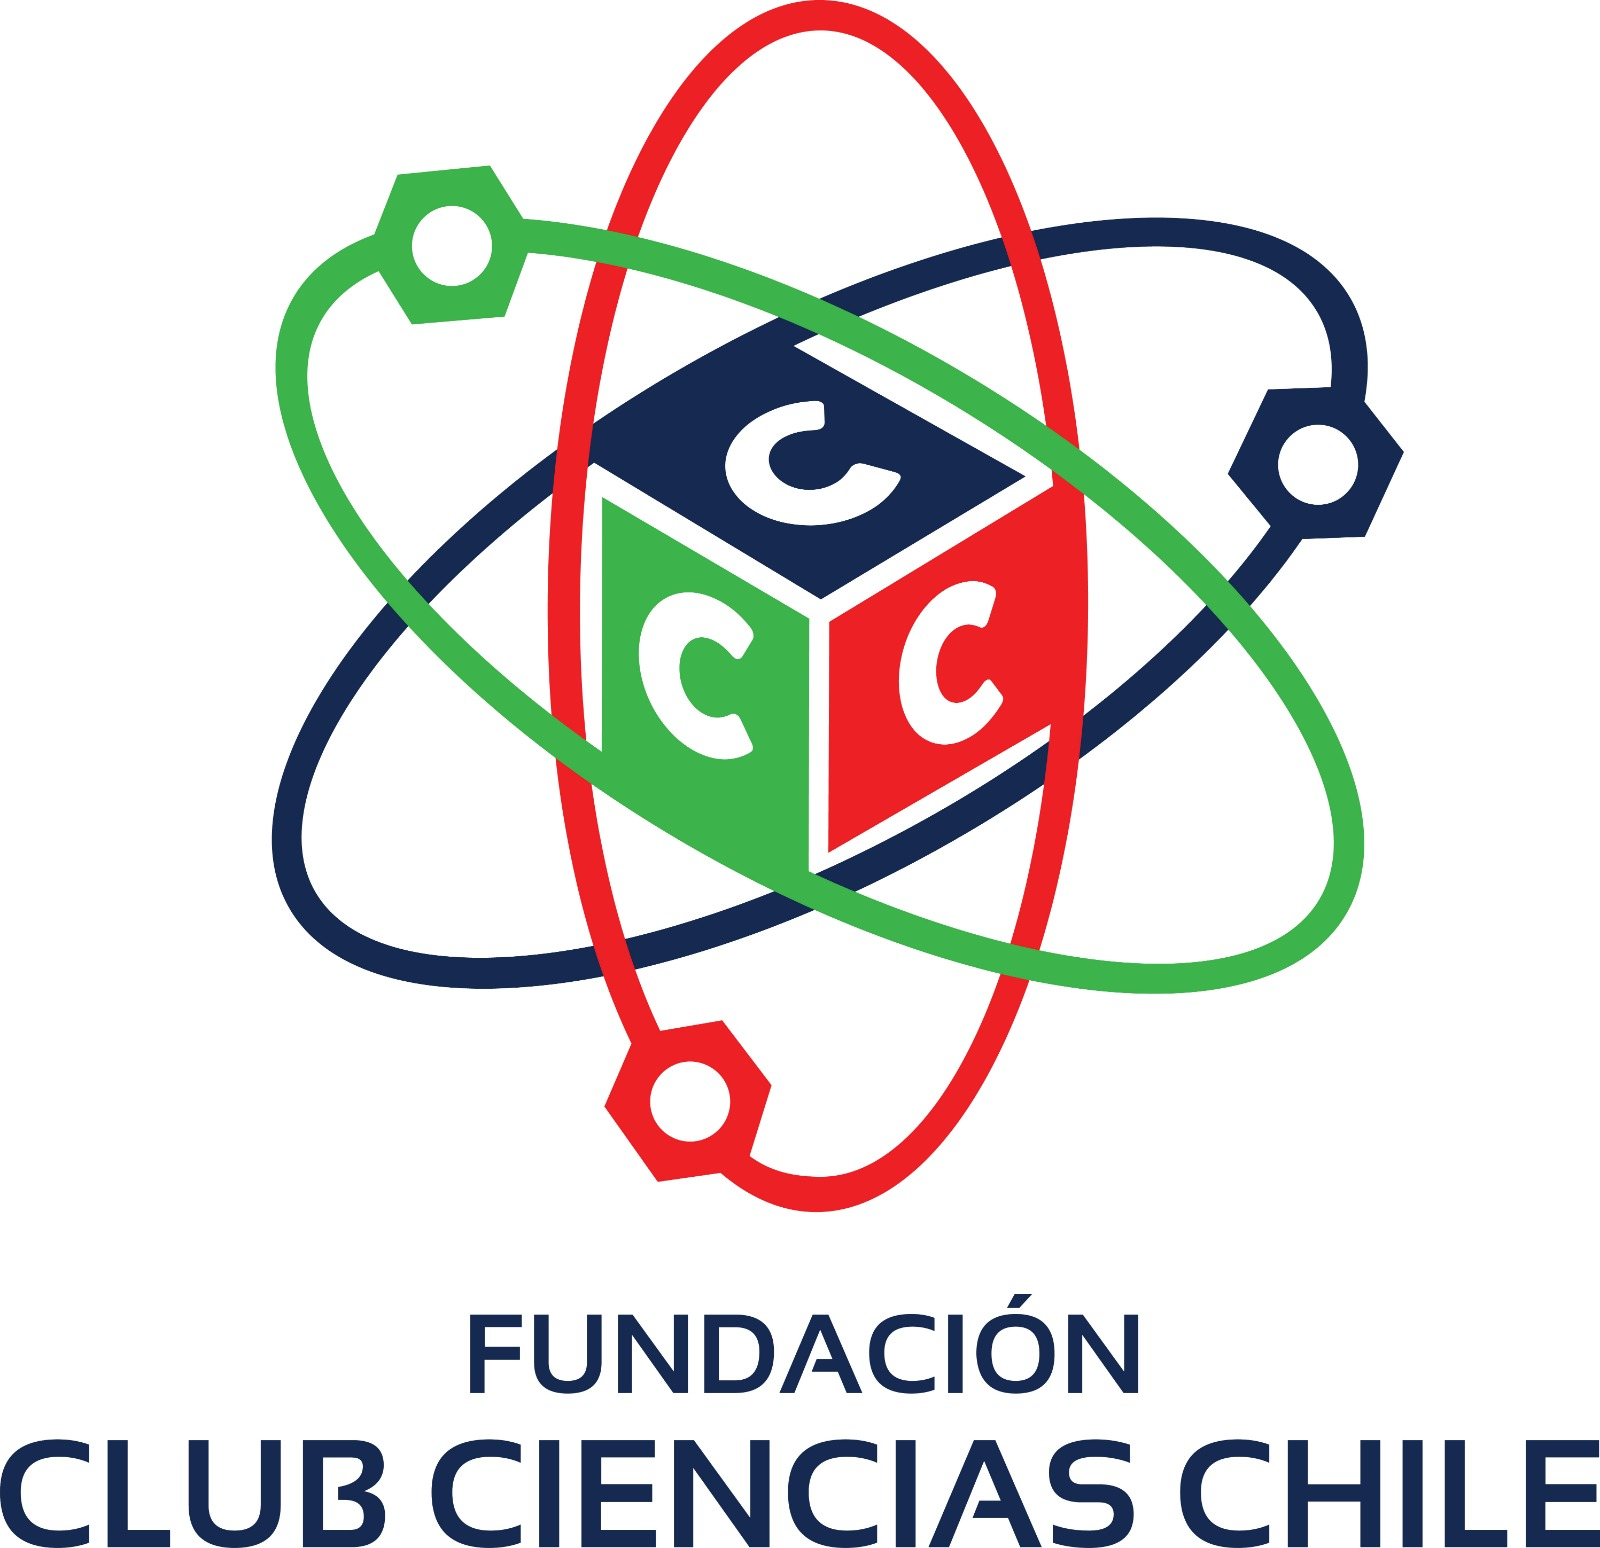 FUNDACION CLUB CIENCIAS CHILE